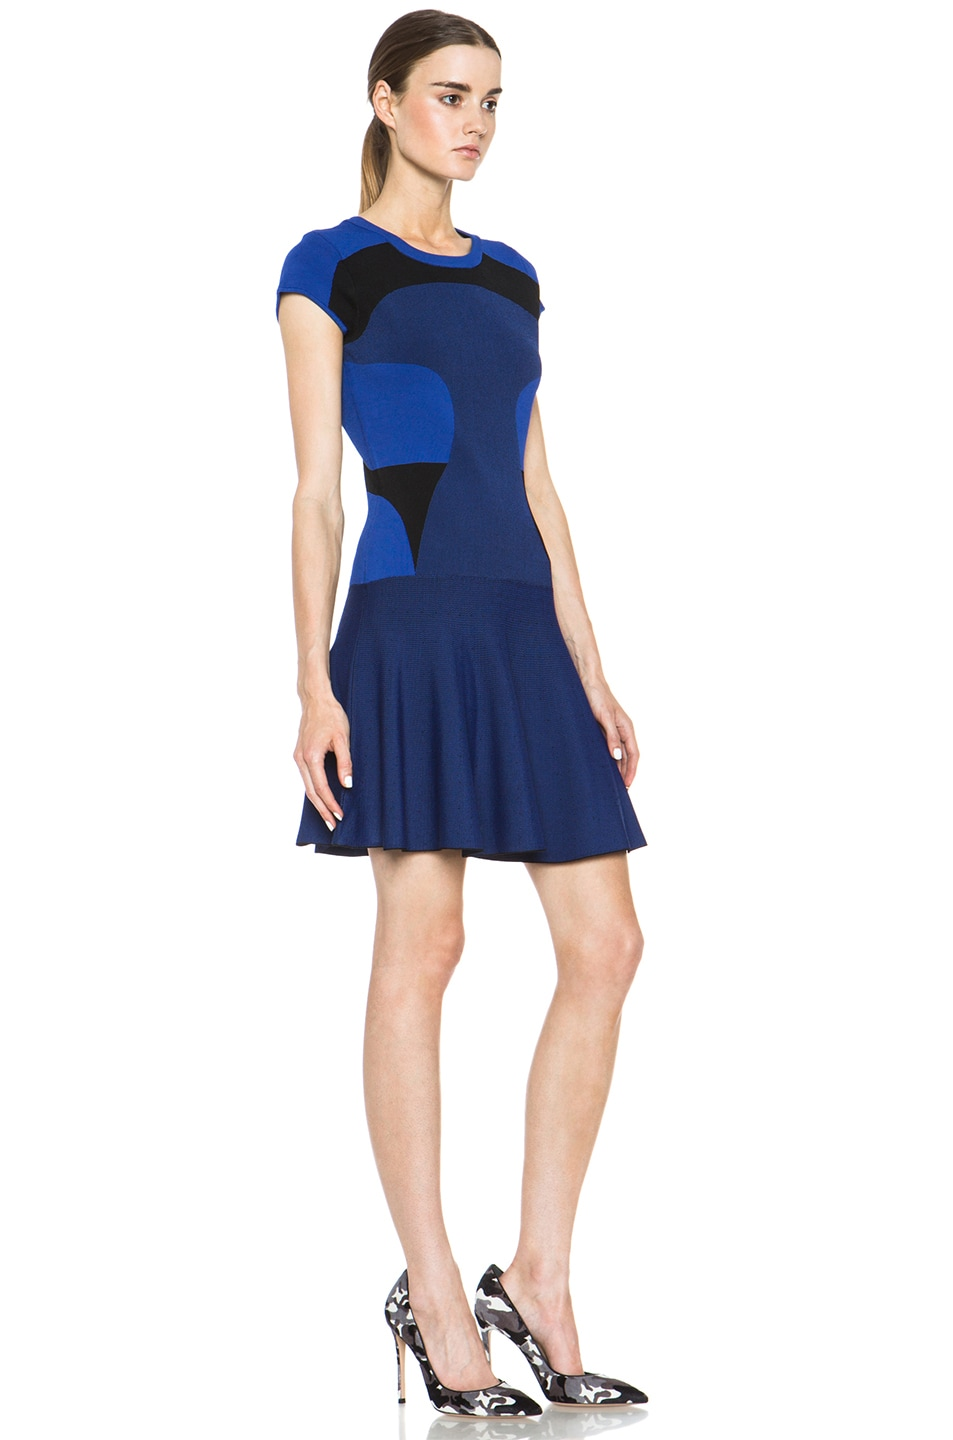 Image 3 of Diane von Furstenberg Renee Dress in Vivid Blue & Black